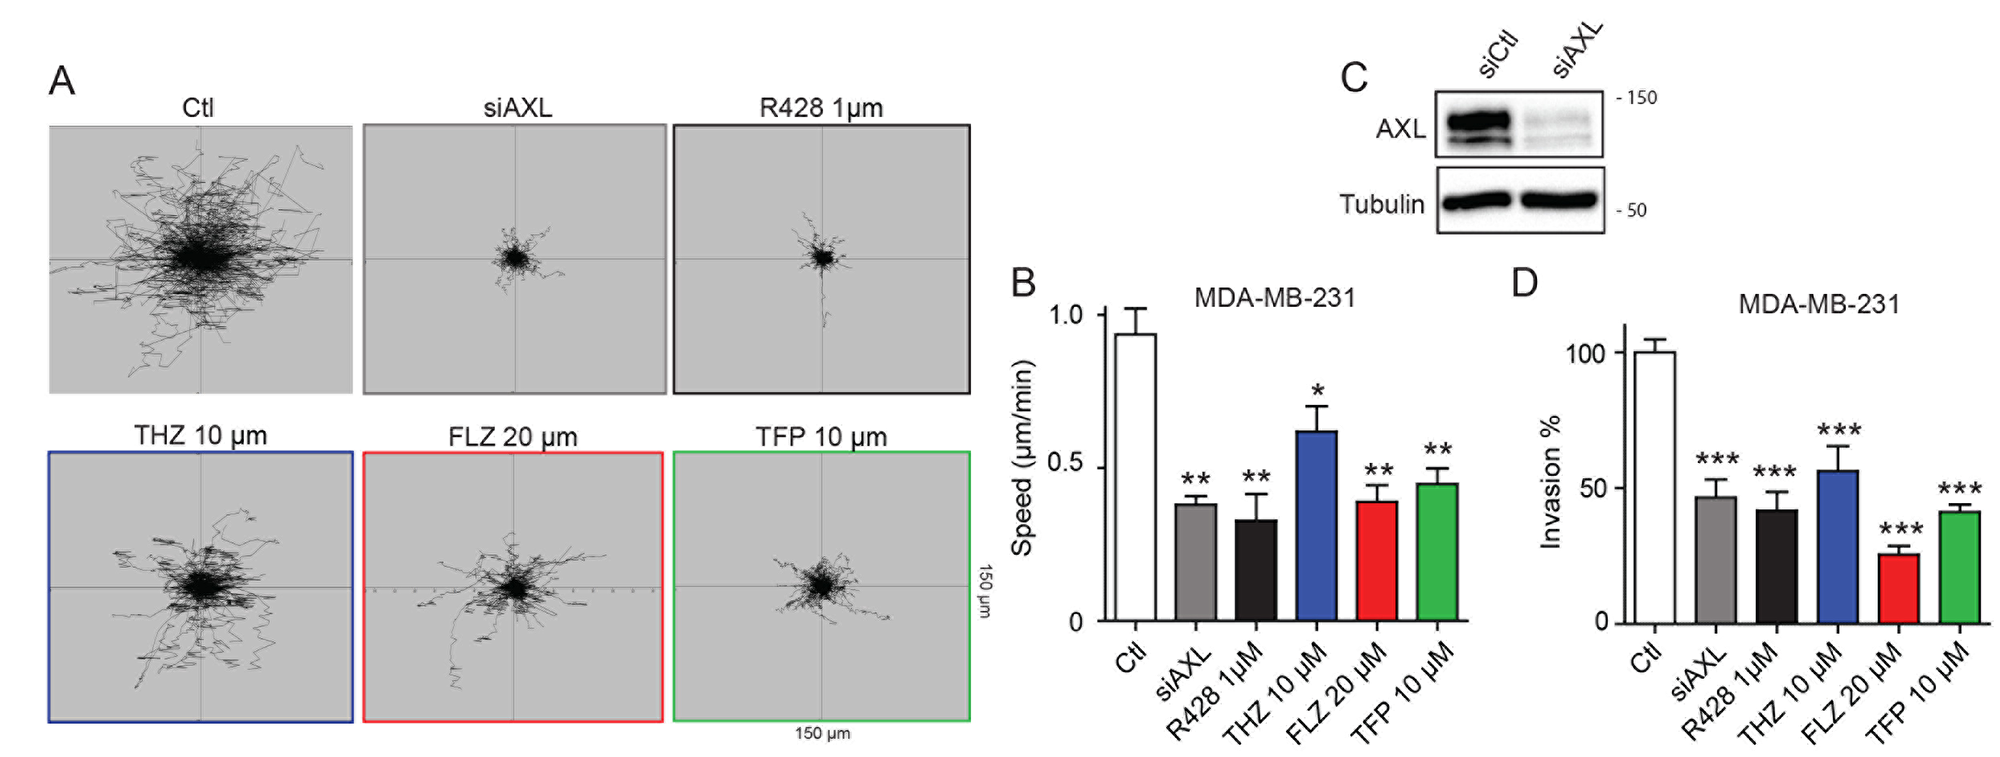 Treatments with THZ, FLZ and TFP reduces the migration potential of TNBC cells.